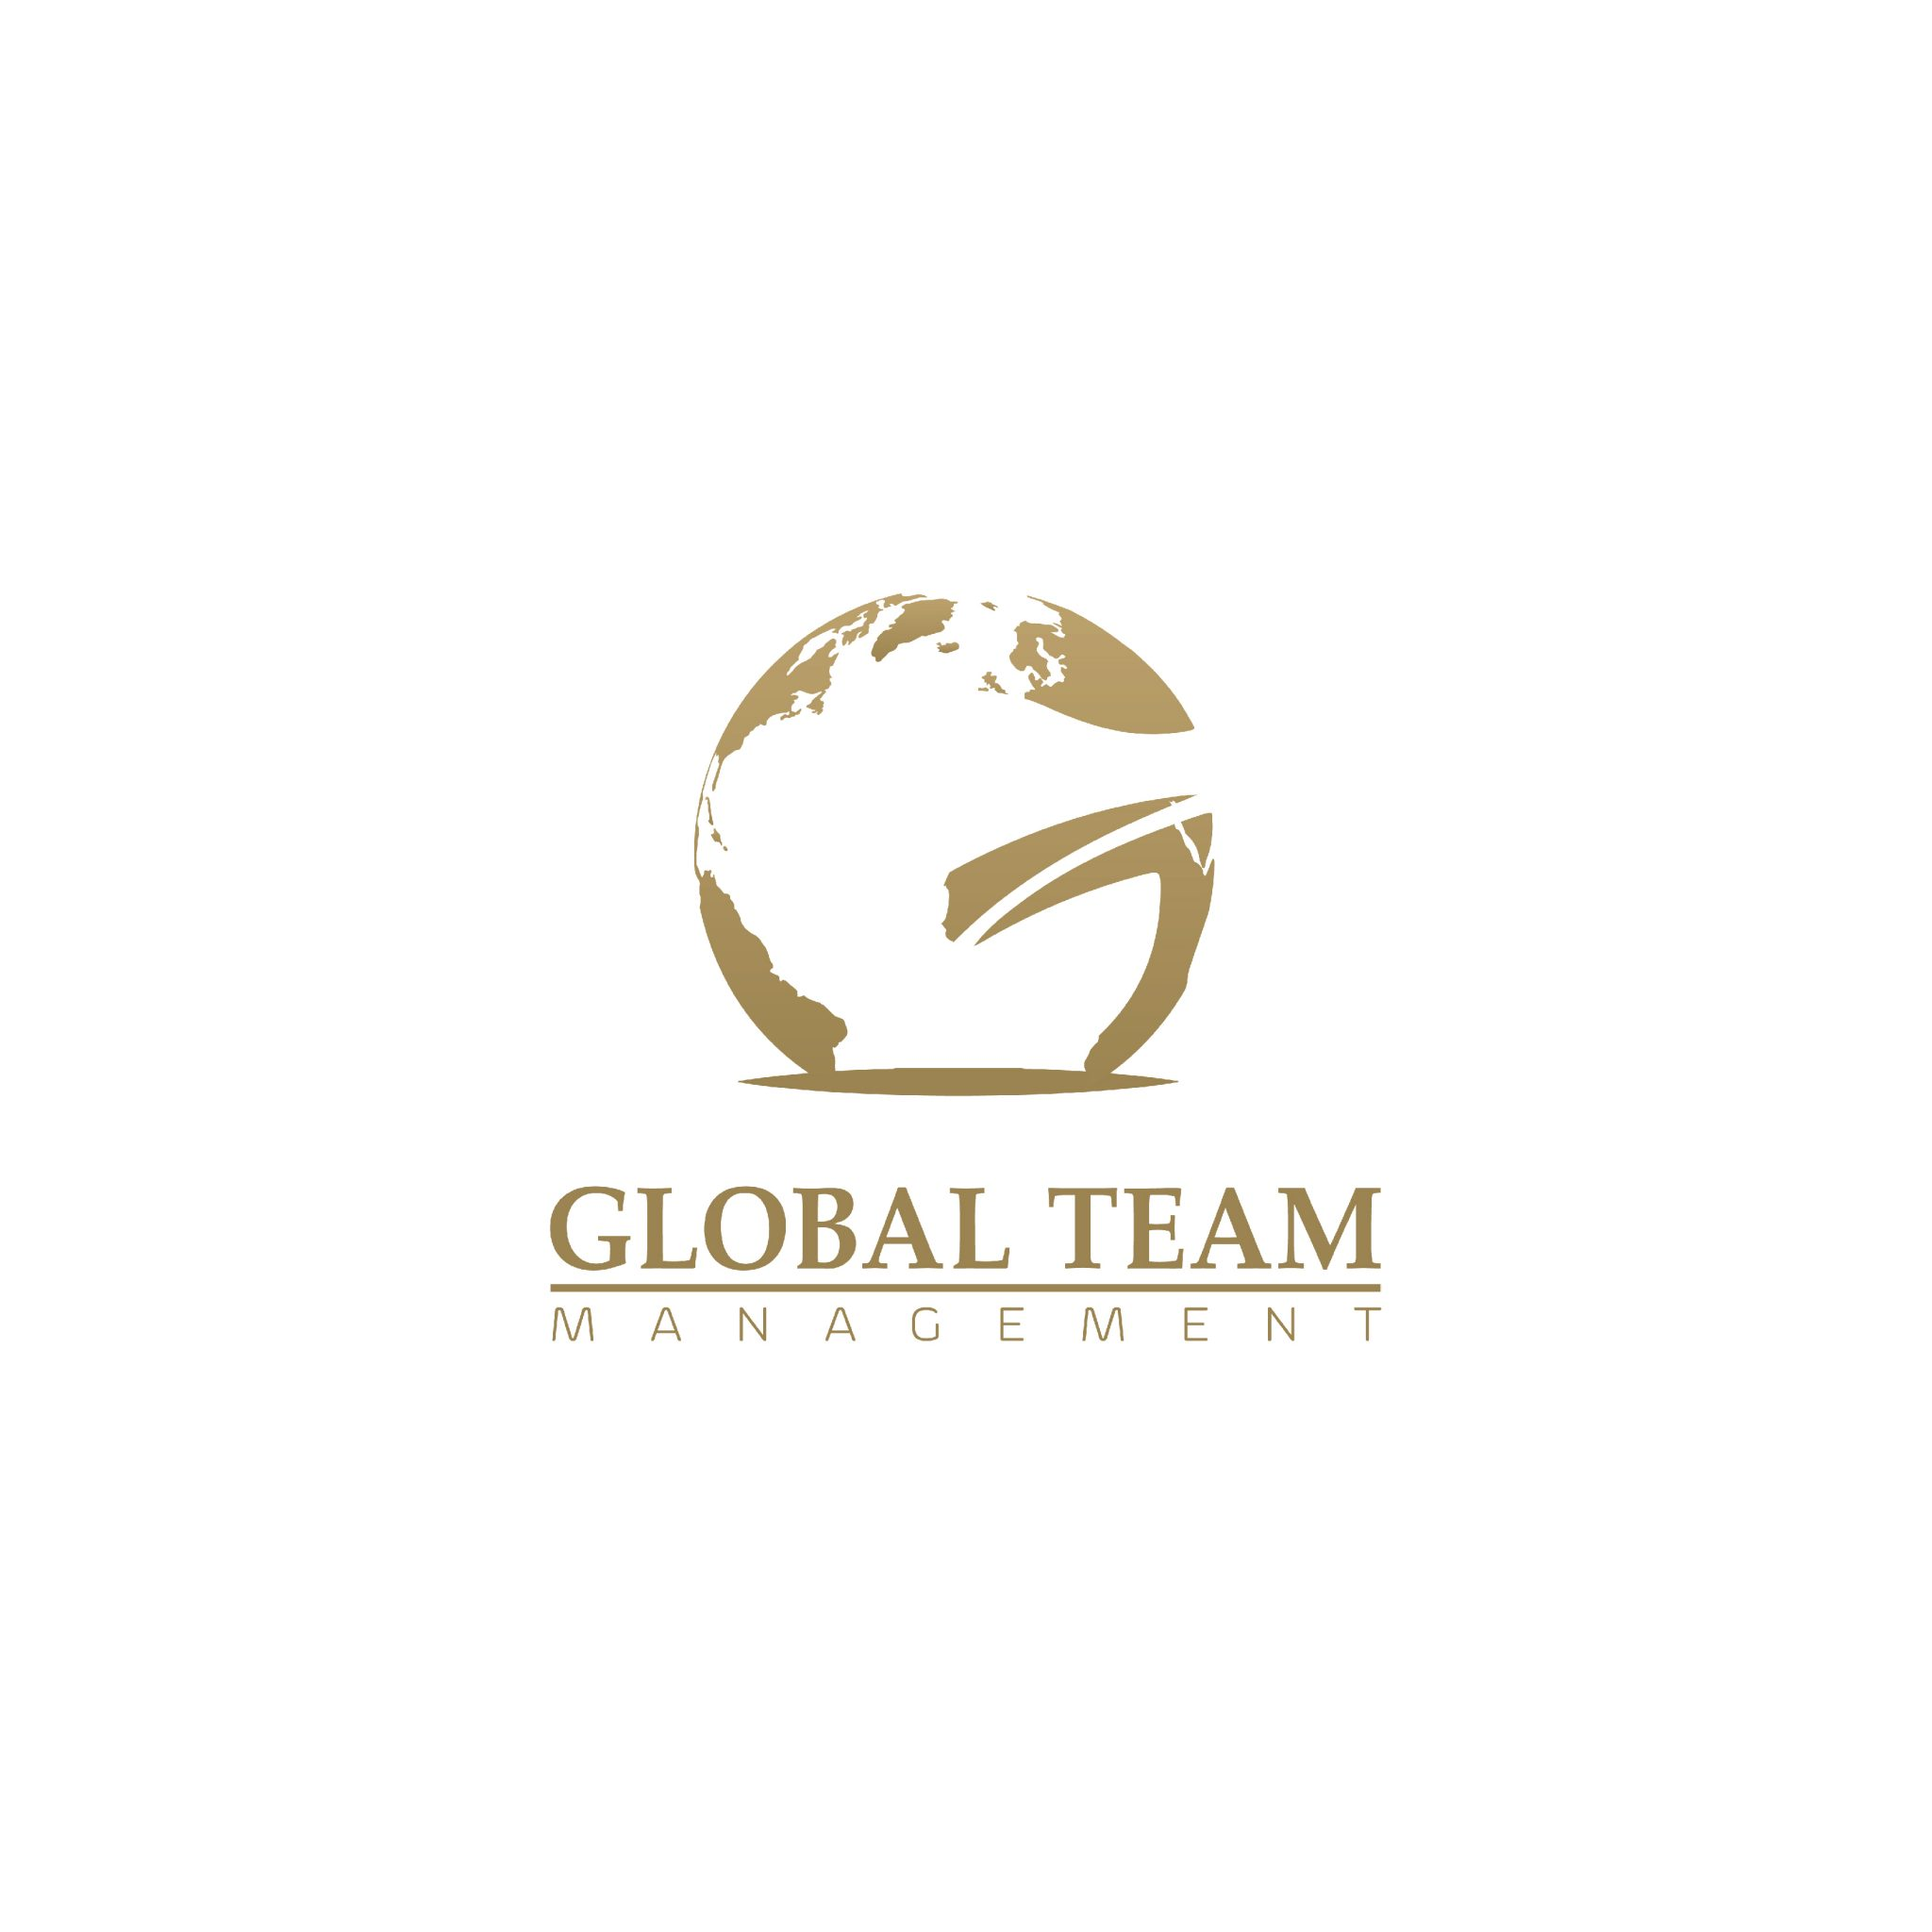 Global Team Management